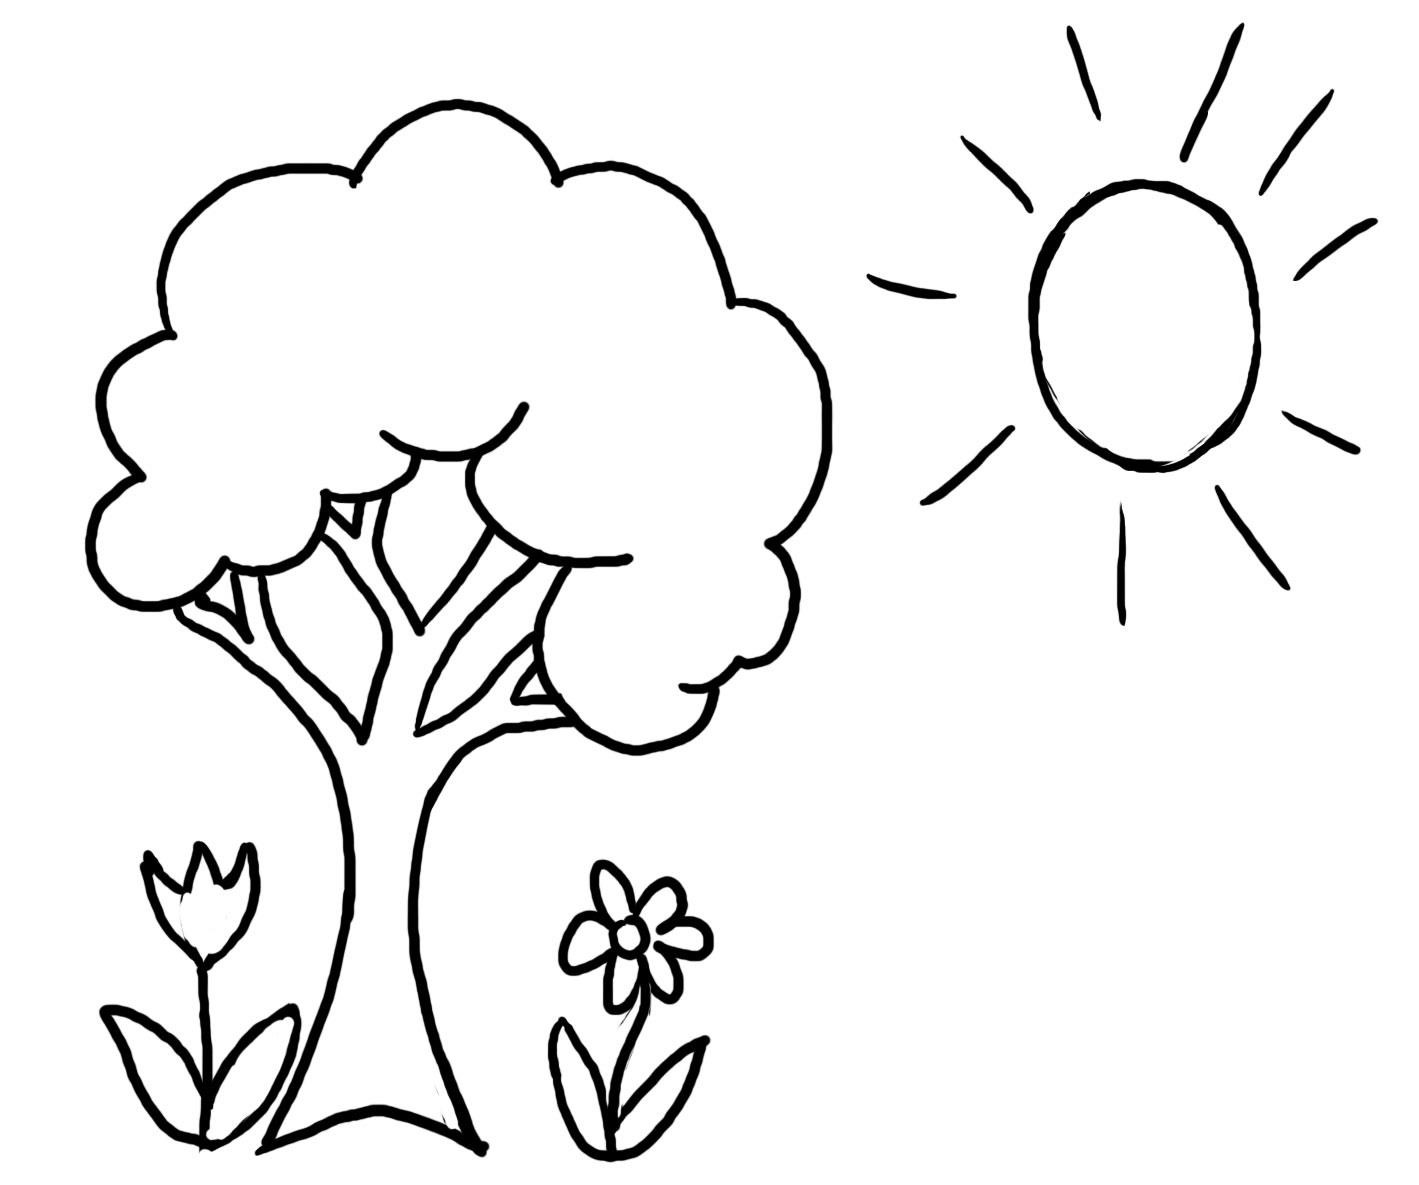 tree line coloring pages - photo#42